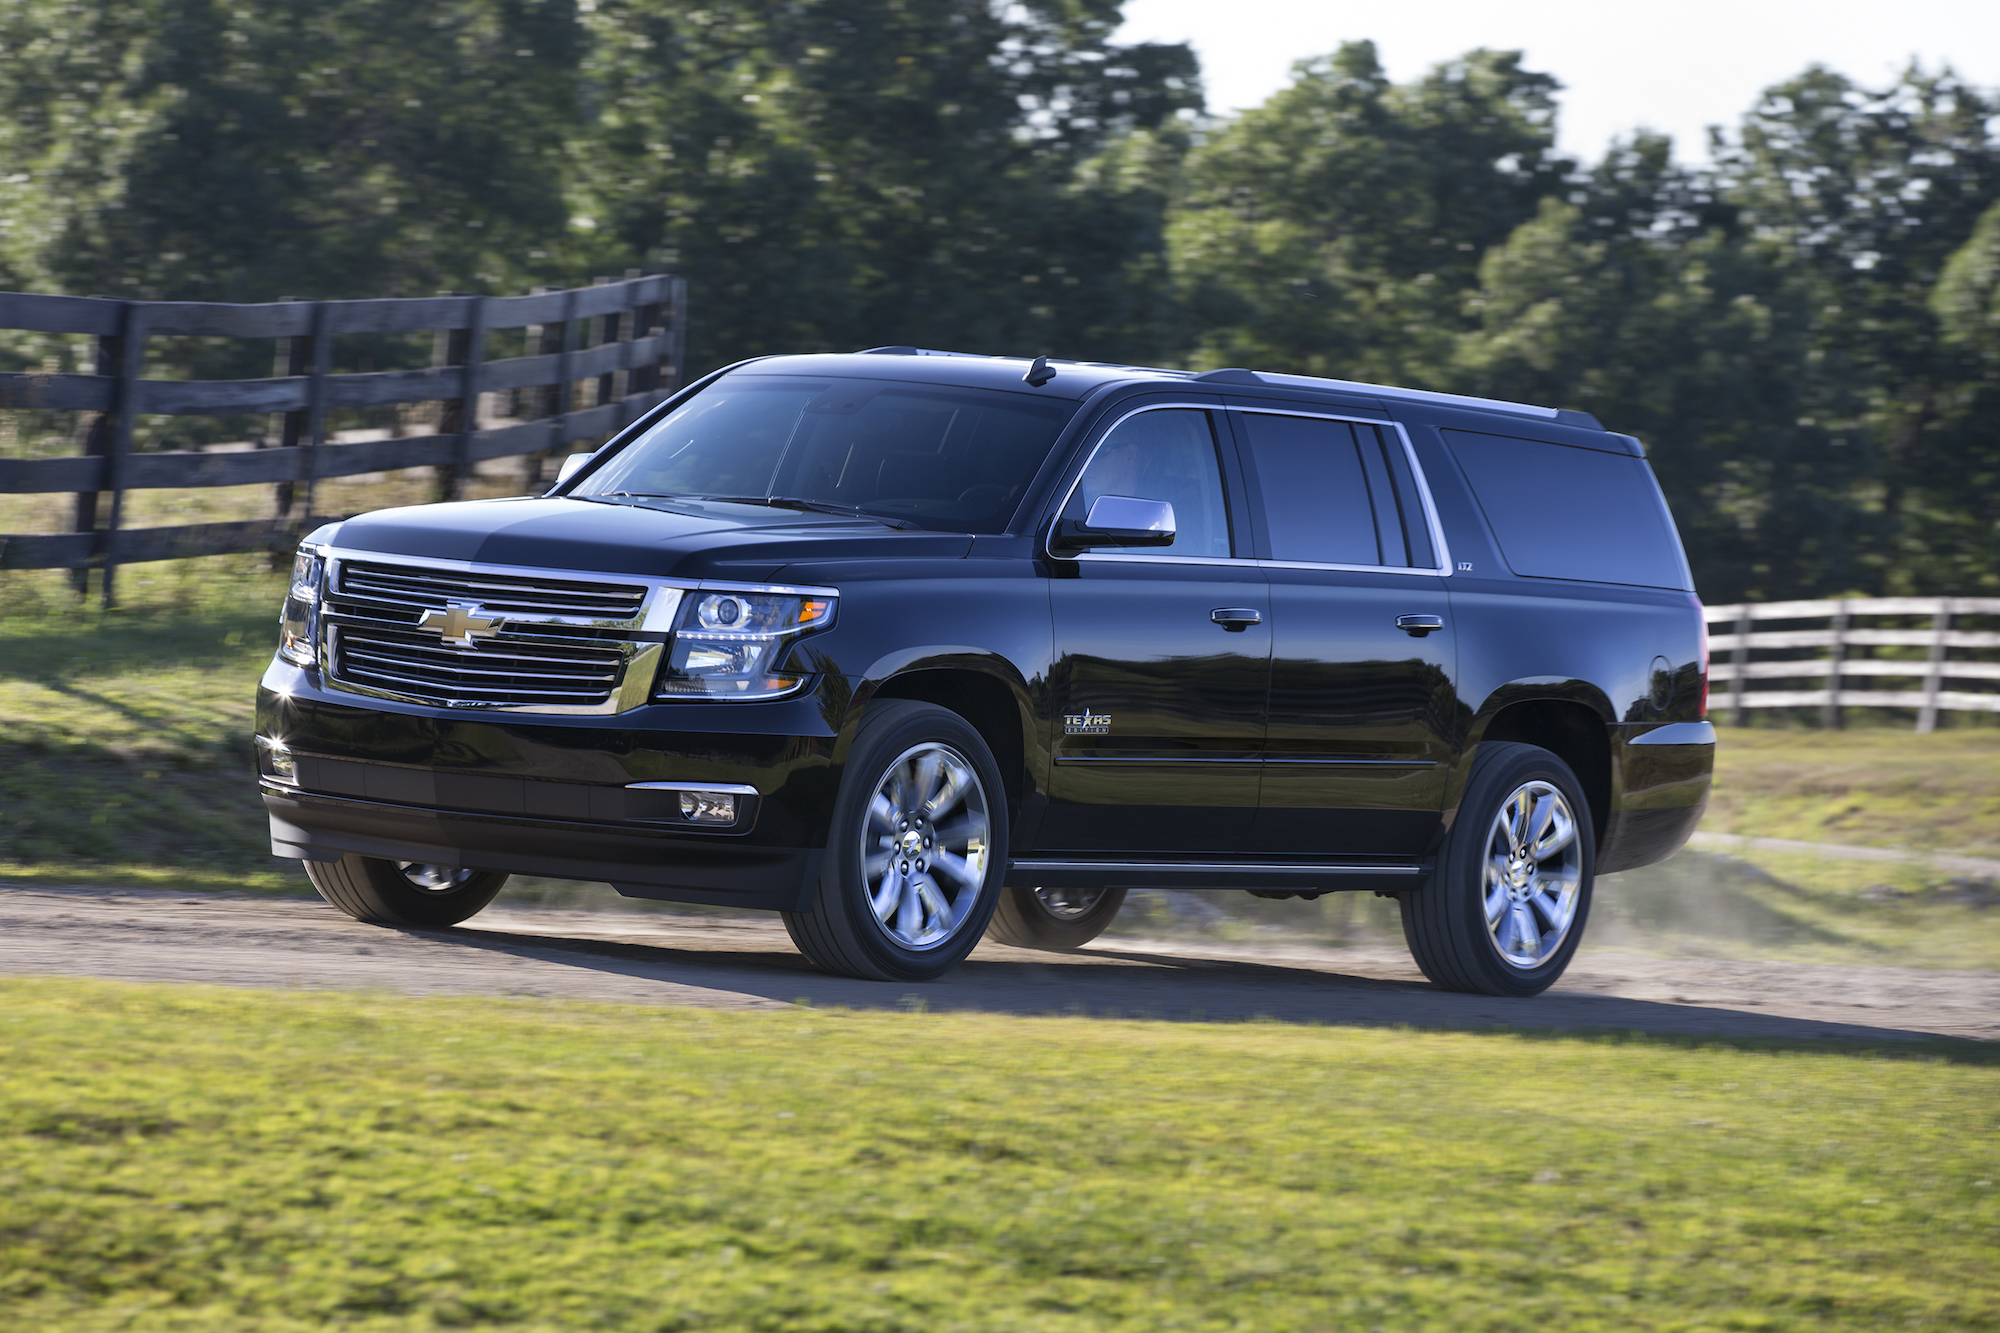 2015 Chevrolet Suburban (Chevy) Review, Ratings, Specs, Prices, and Photos - The Car Connection